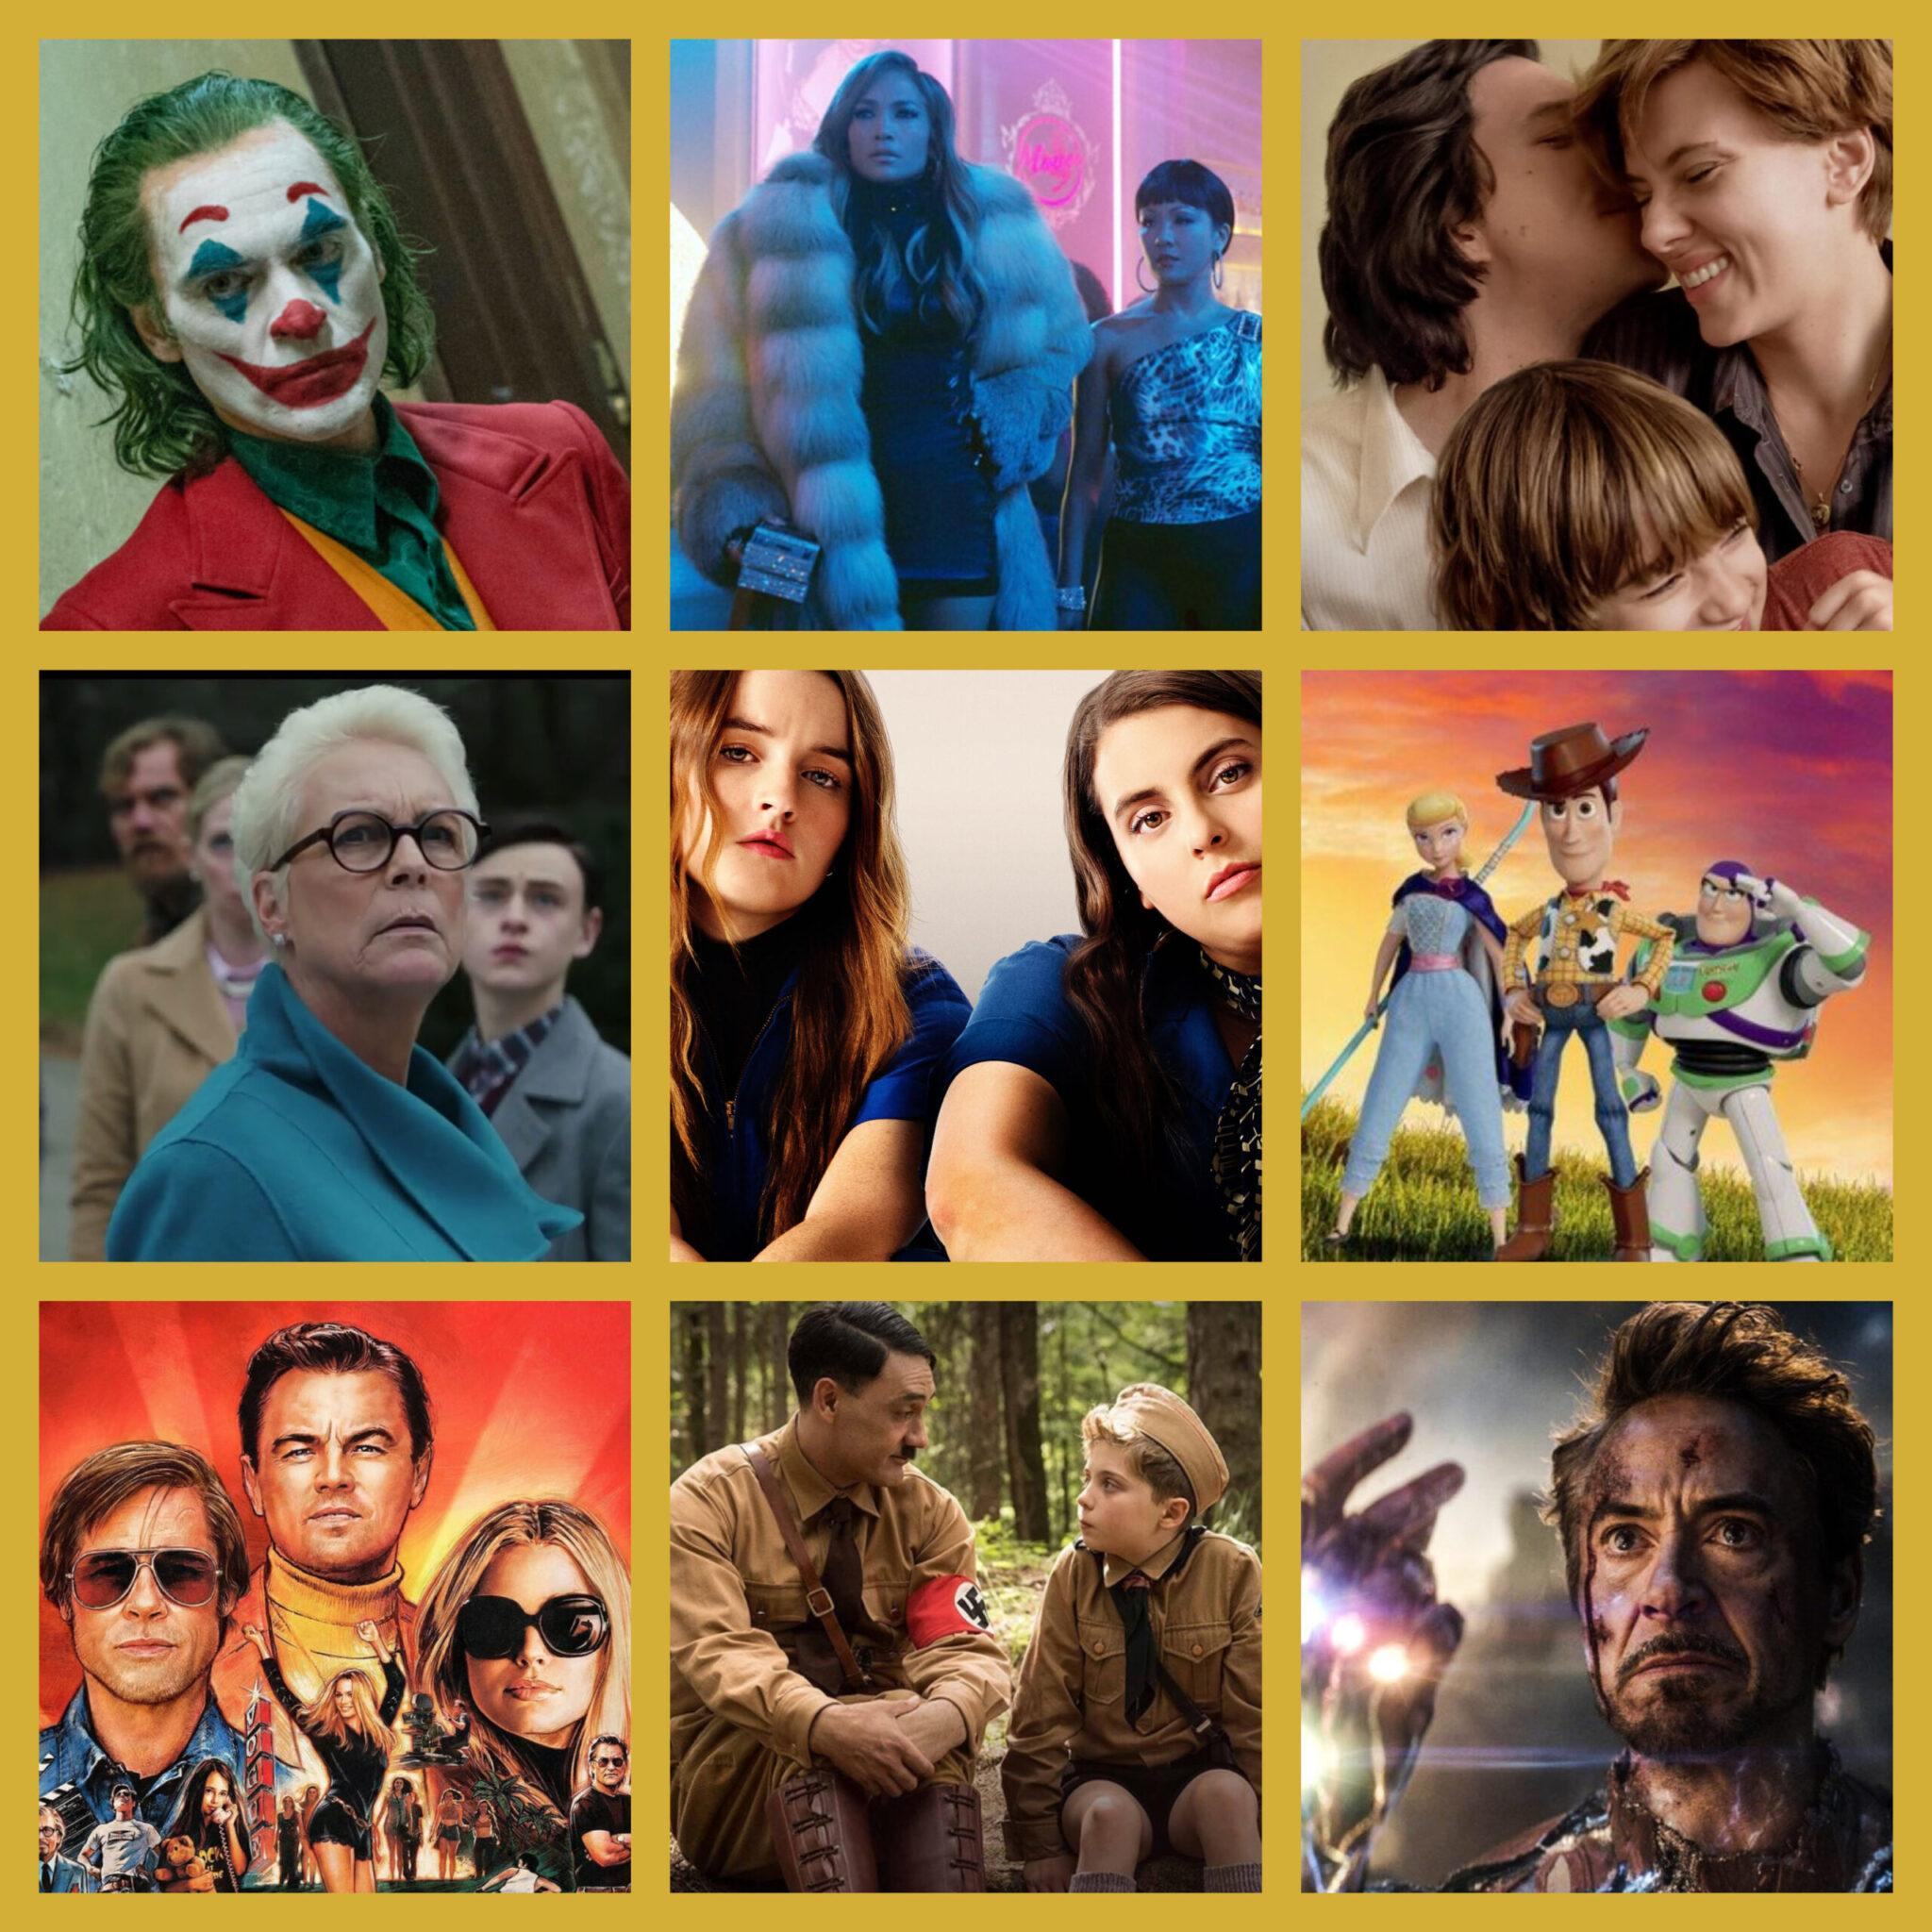 Jazz Tangcay's Nine Favorite Films of 2019